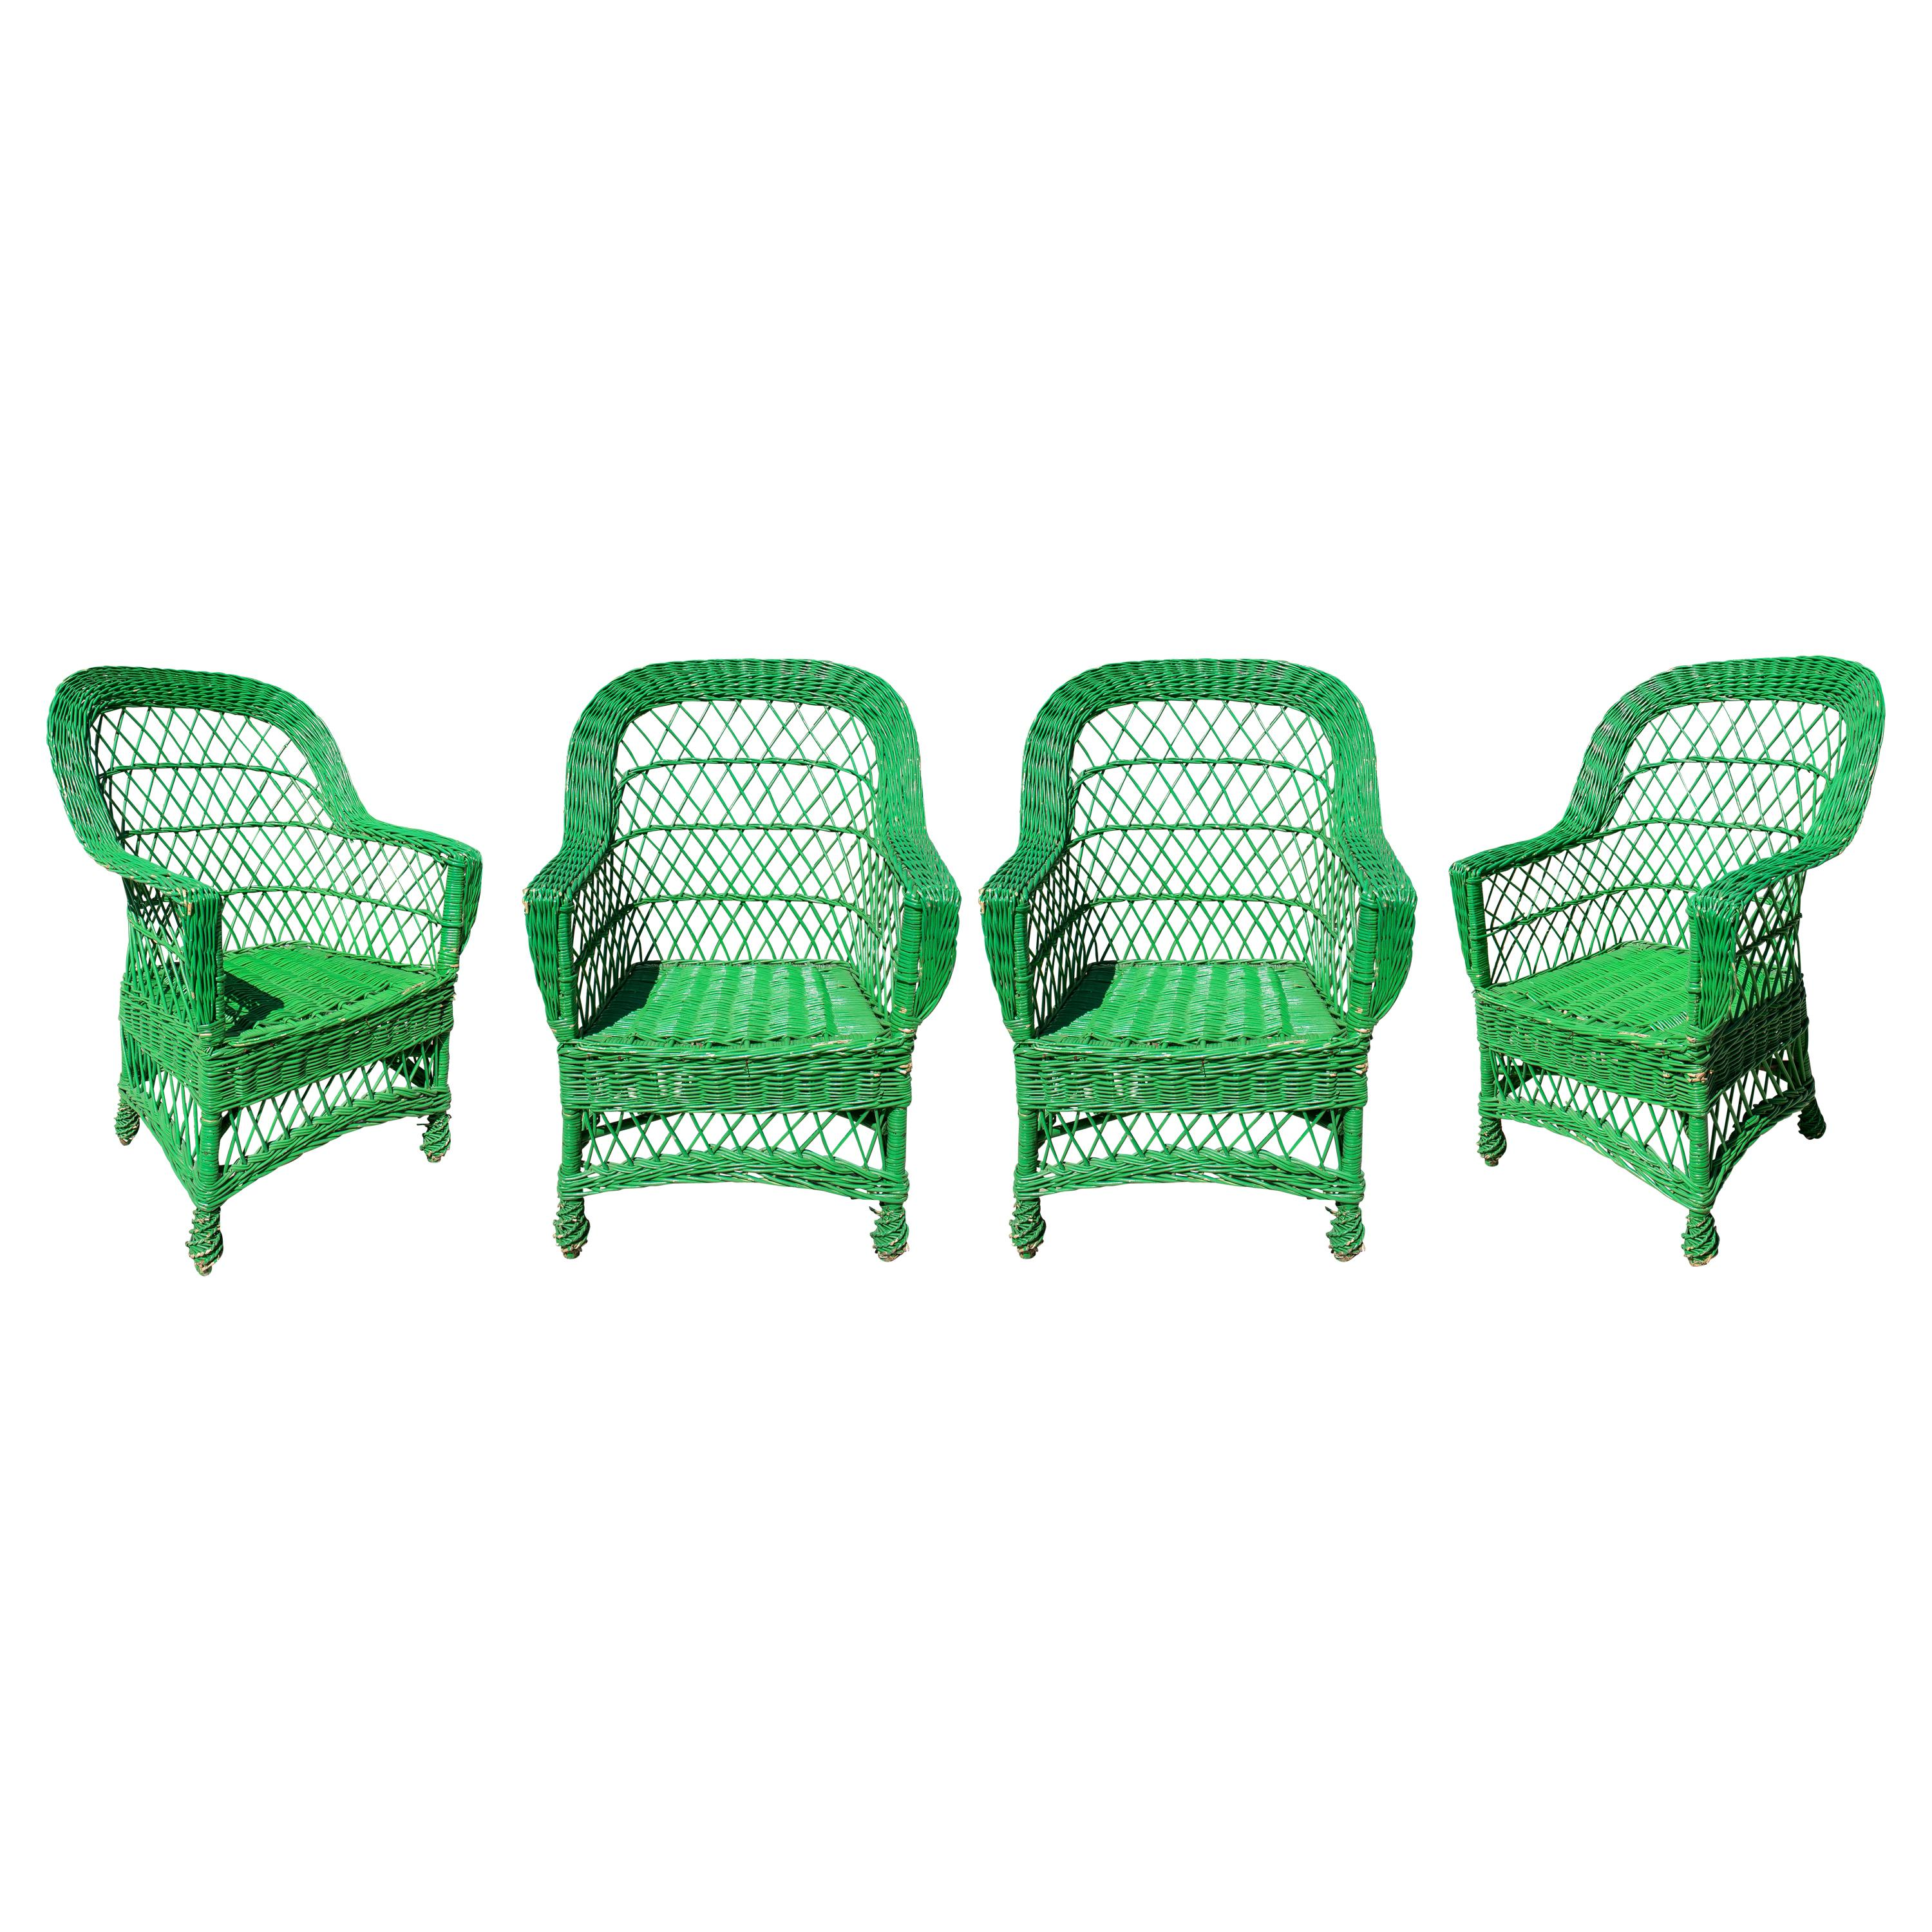 Set of Four 1950s Spanish Green Lace Wicker Armchairs